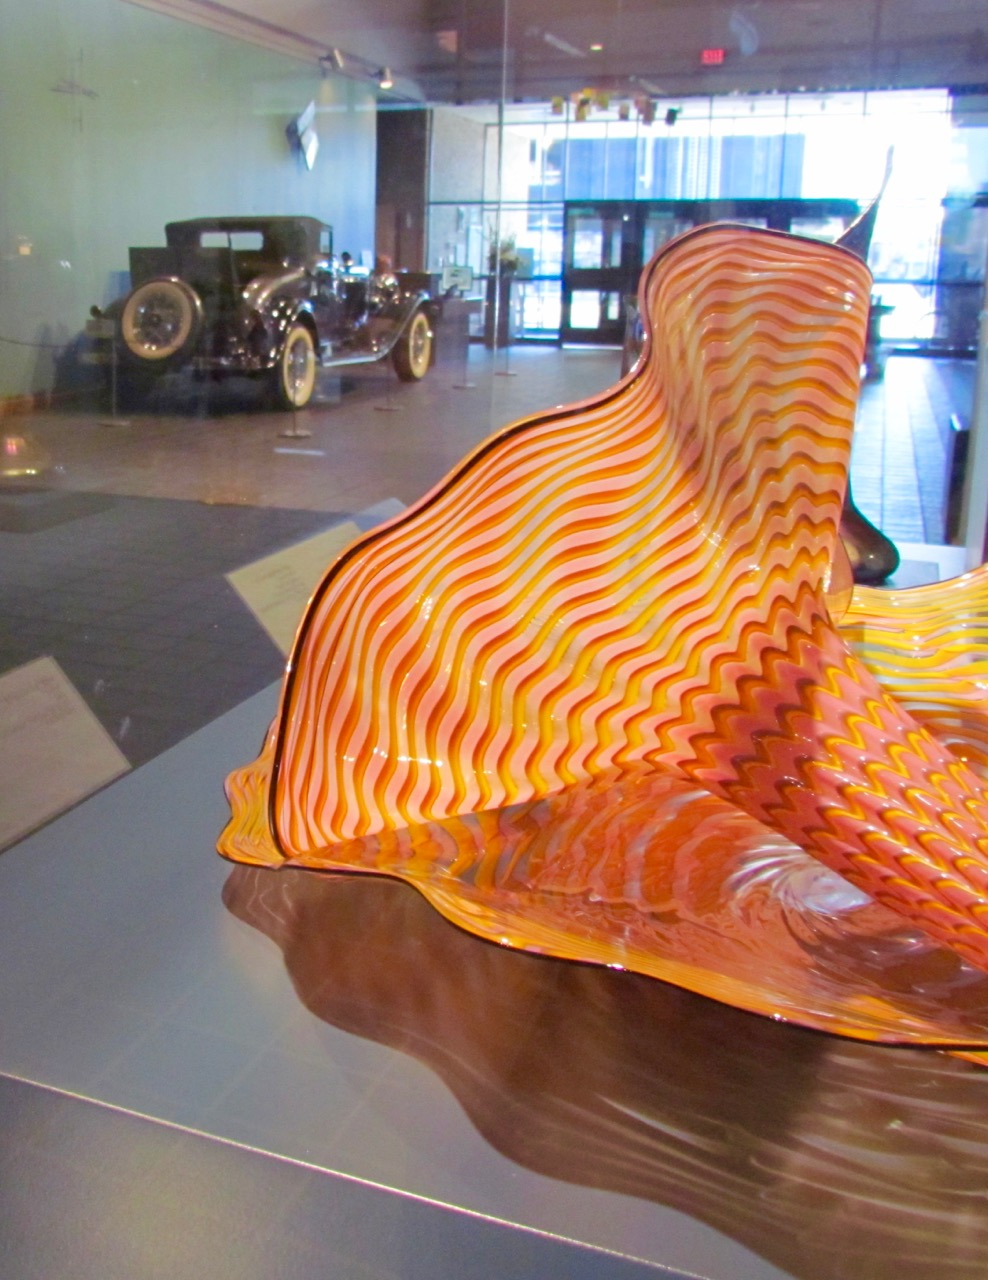 Chihuly glass sculpture in museum lobby with 1934 Auburn 1250